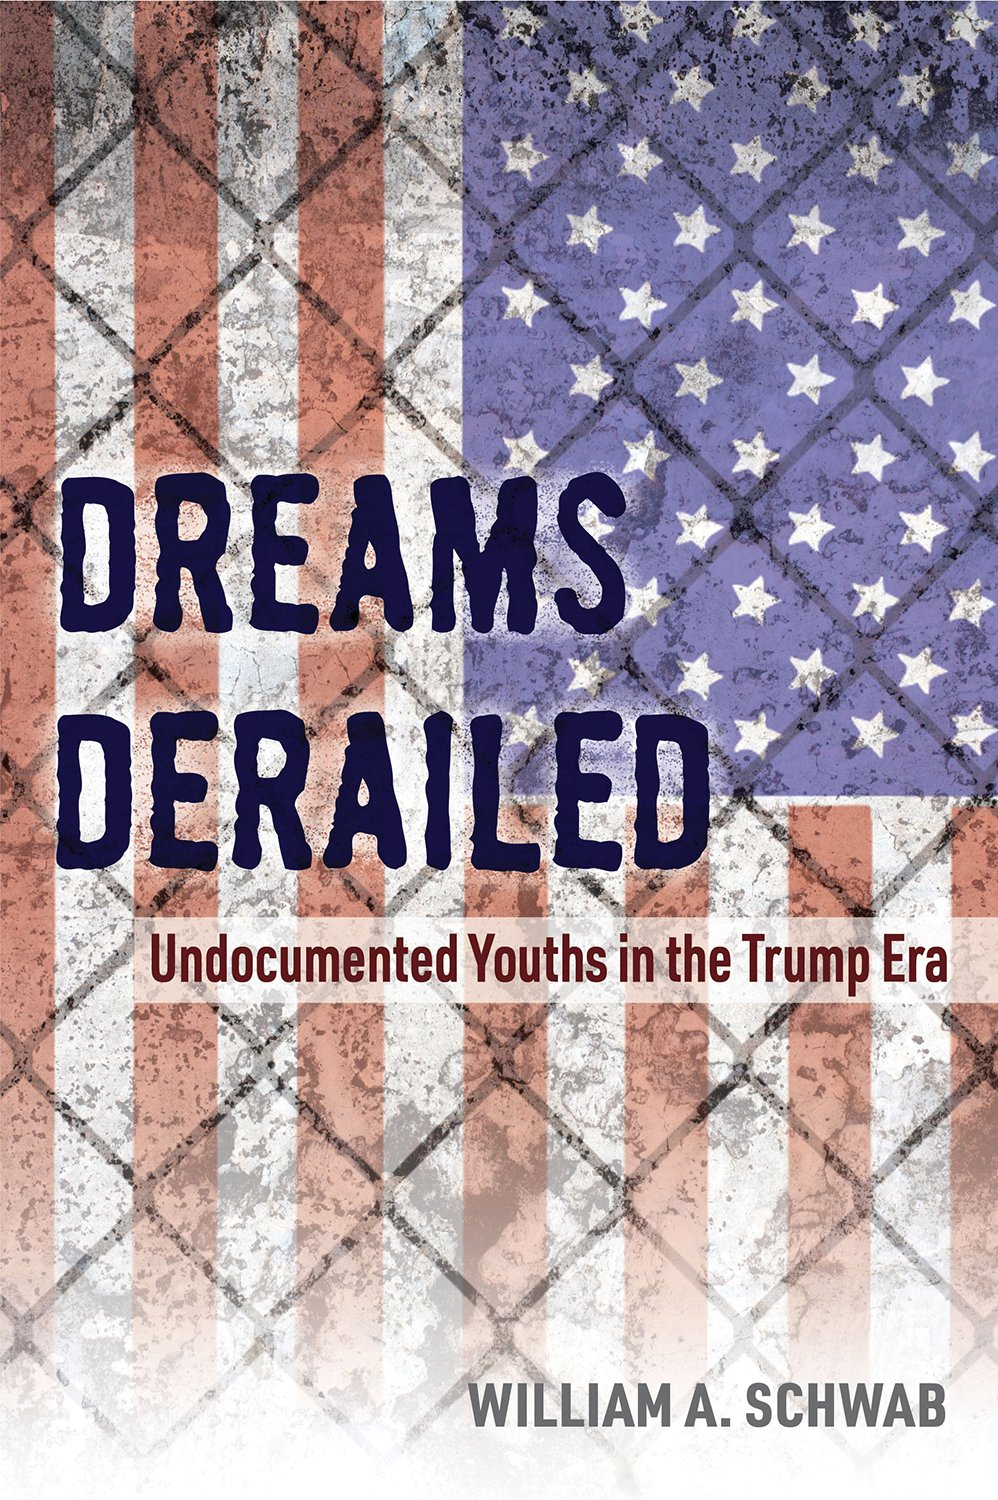 Dreams Derailed: Undocumented Youths in the Trump Era Paperback – October 1, 2018 William A. Schwab University of Arkansas Press 1682260836 General Adult